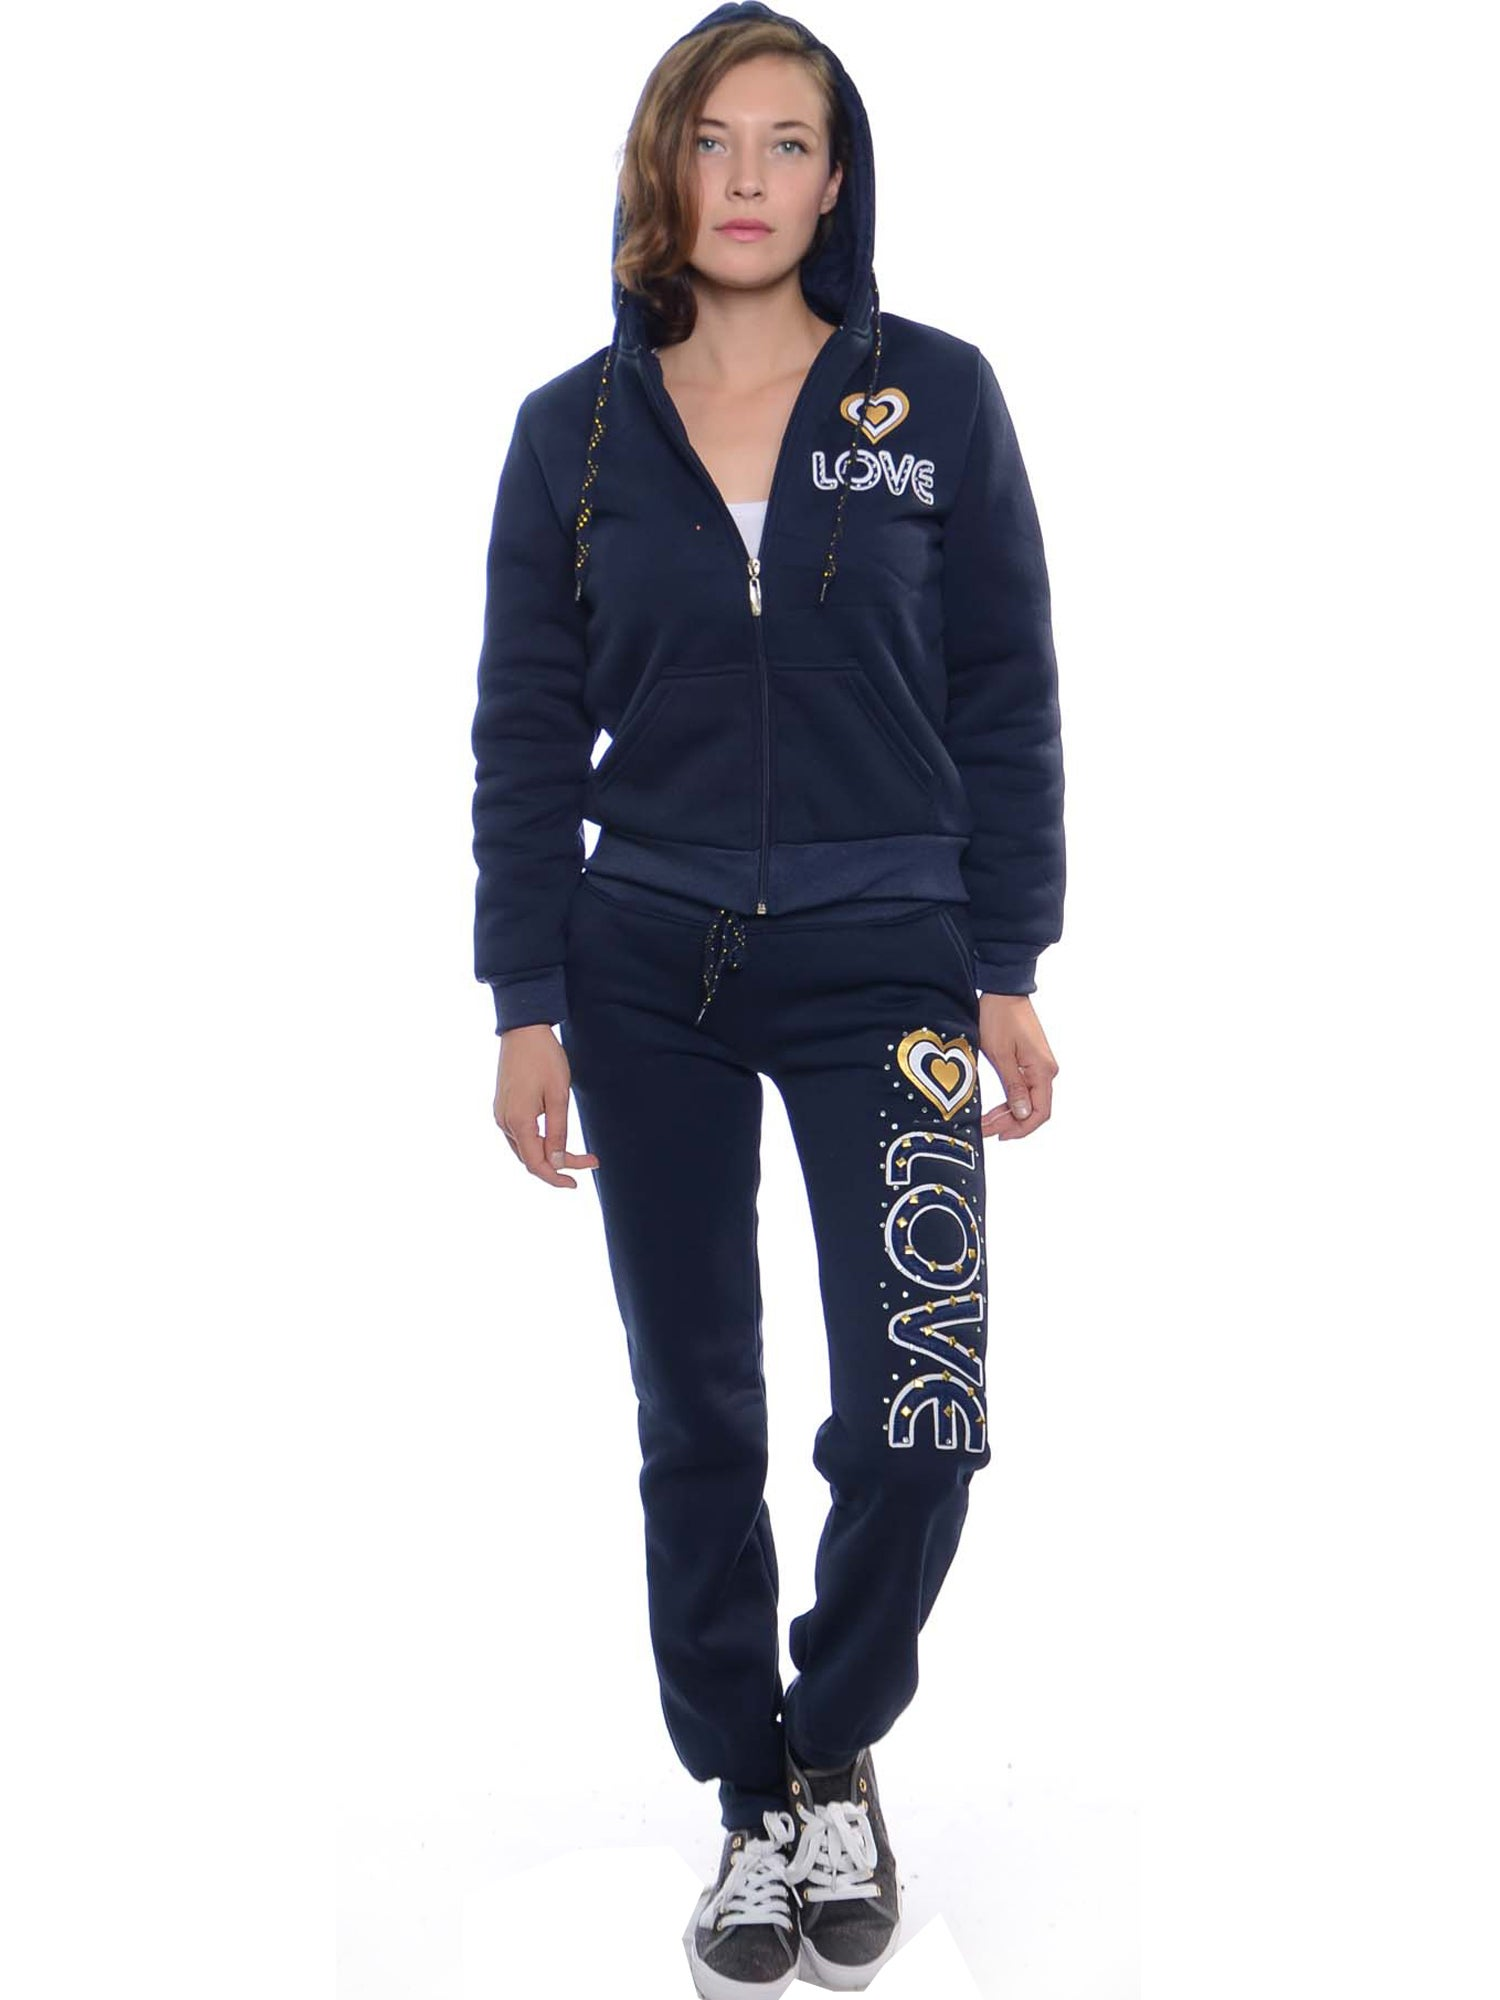 Women's 2-piece Fleece Fur-lined Set with Applique, Details and Rhinestones